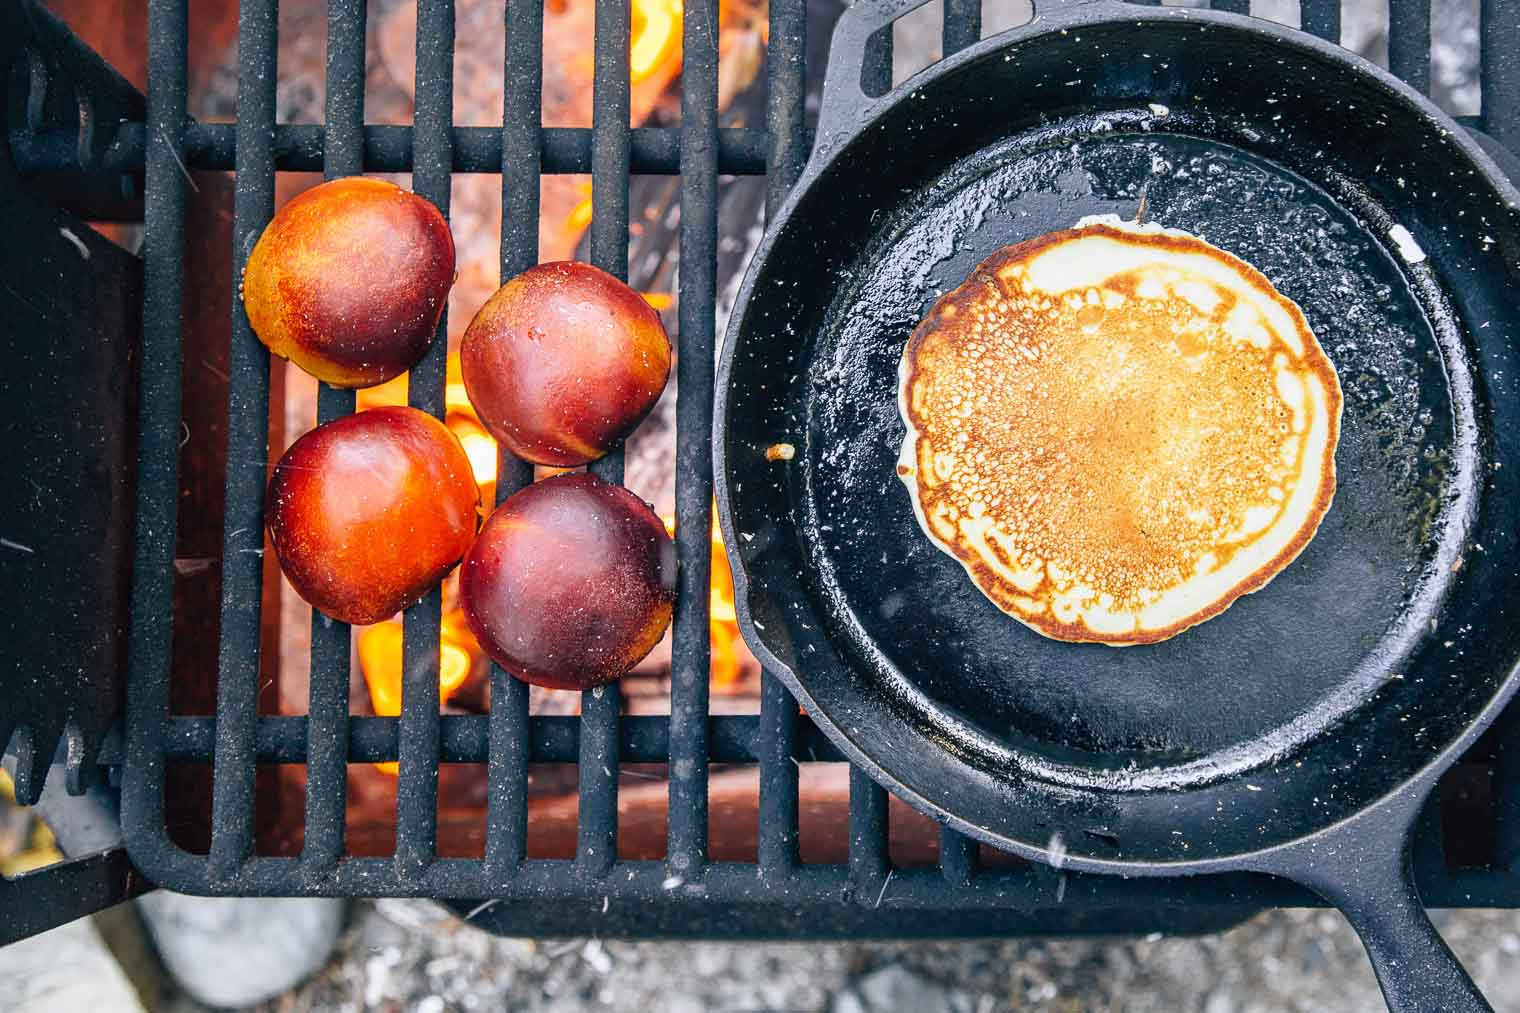 Pancakes in a skillet and halved peaches on a campfire grate